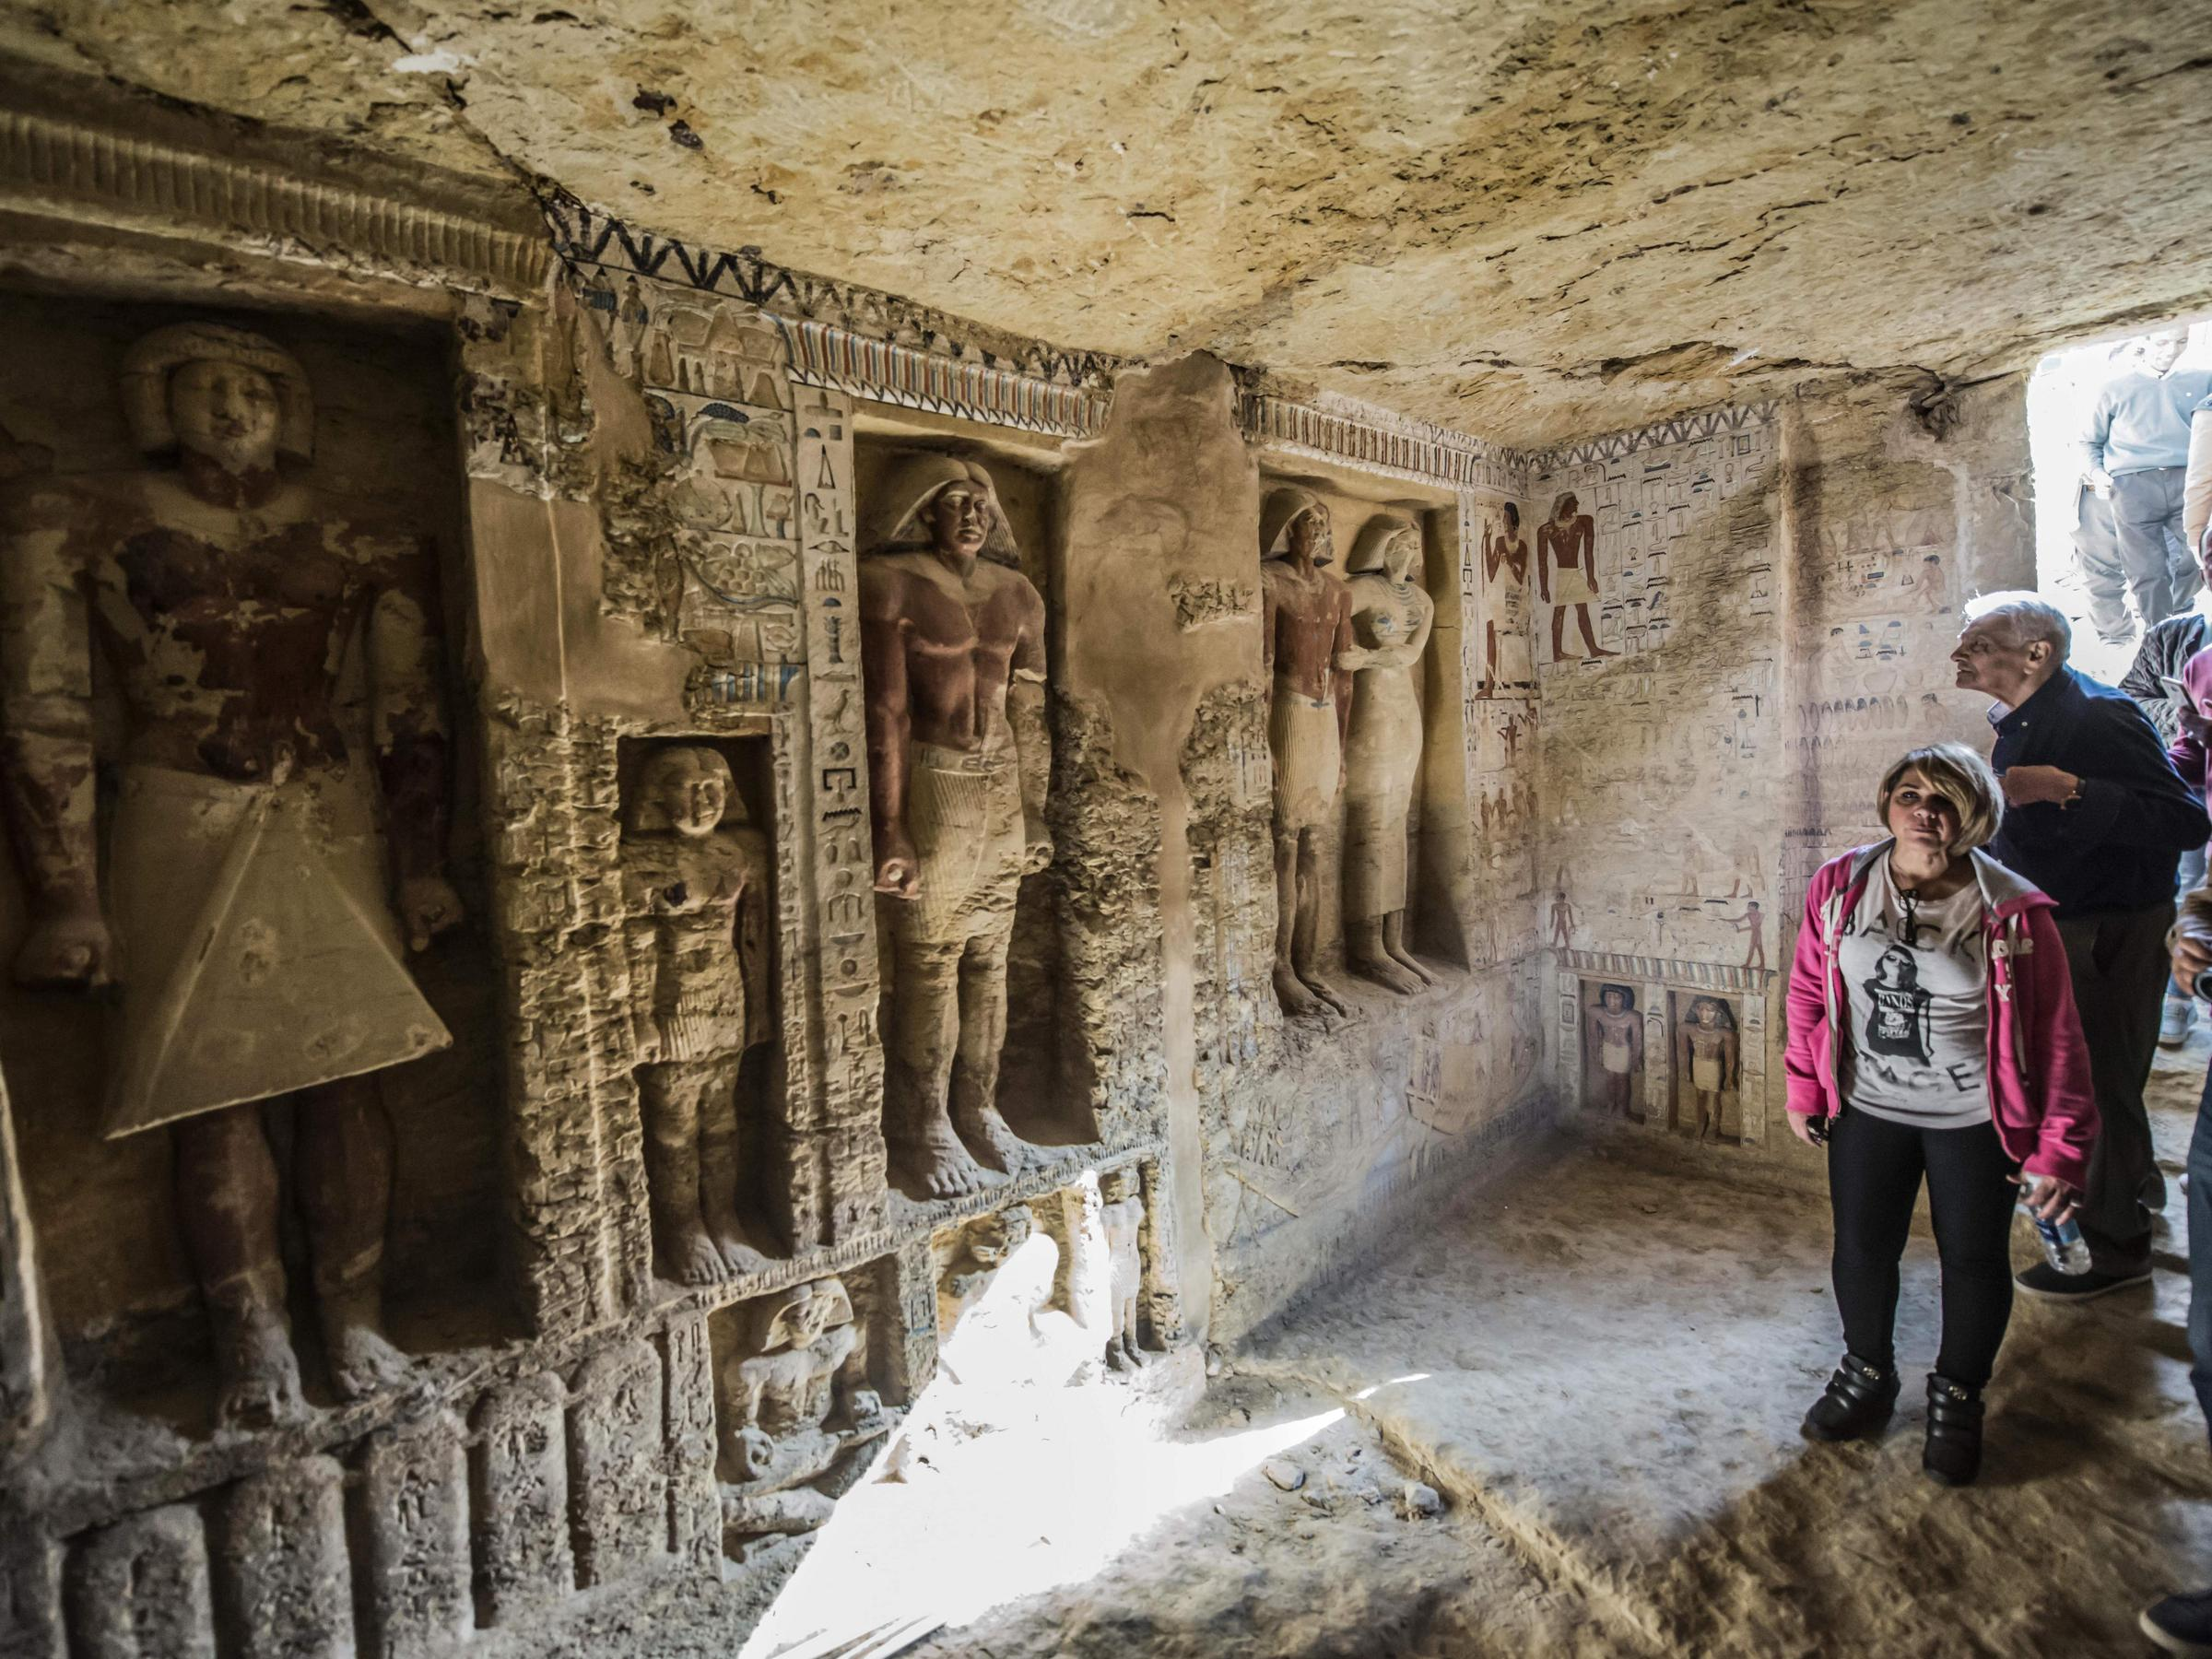 4400-Year-Old Well-Preserved Tomb of Royal Priest Uncovered in Egypt